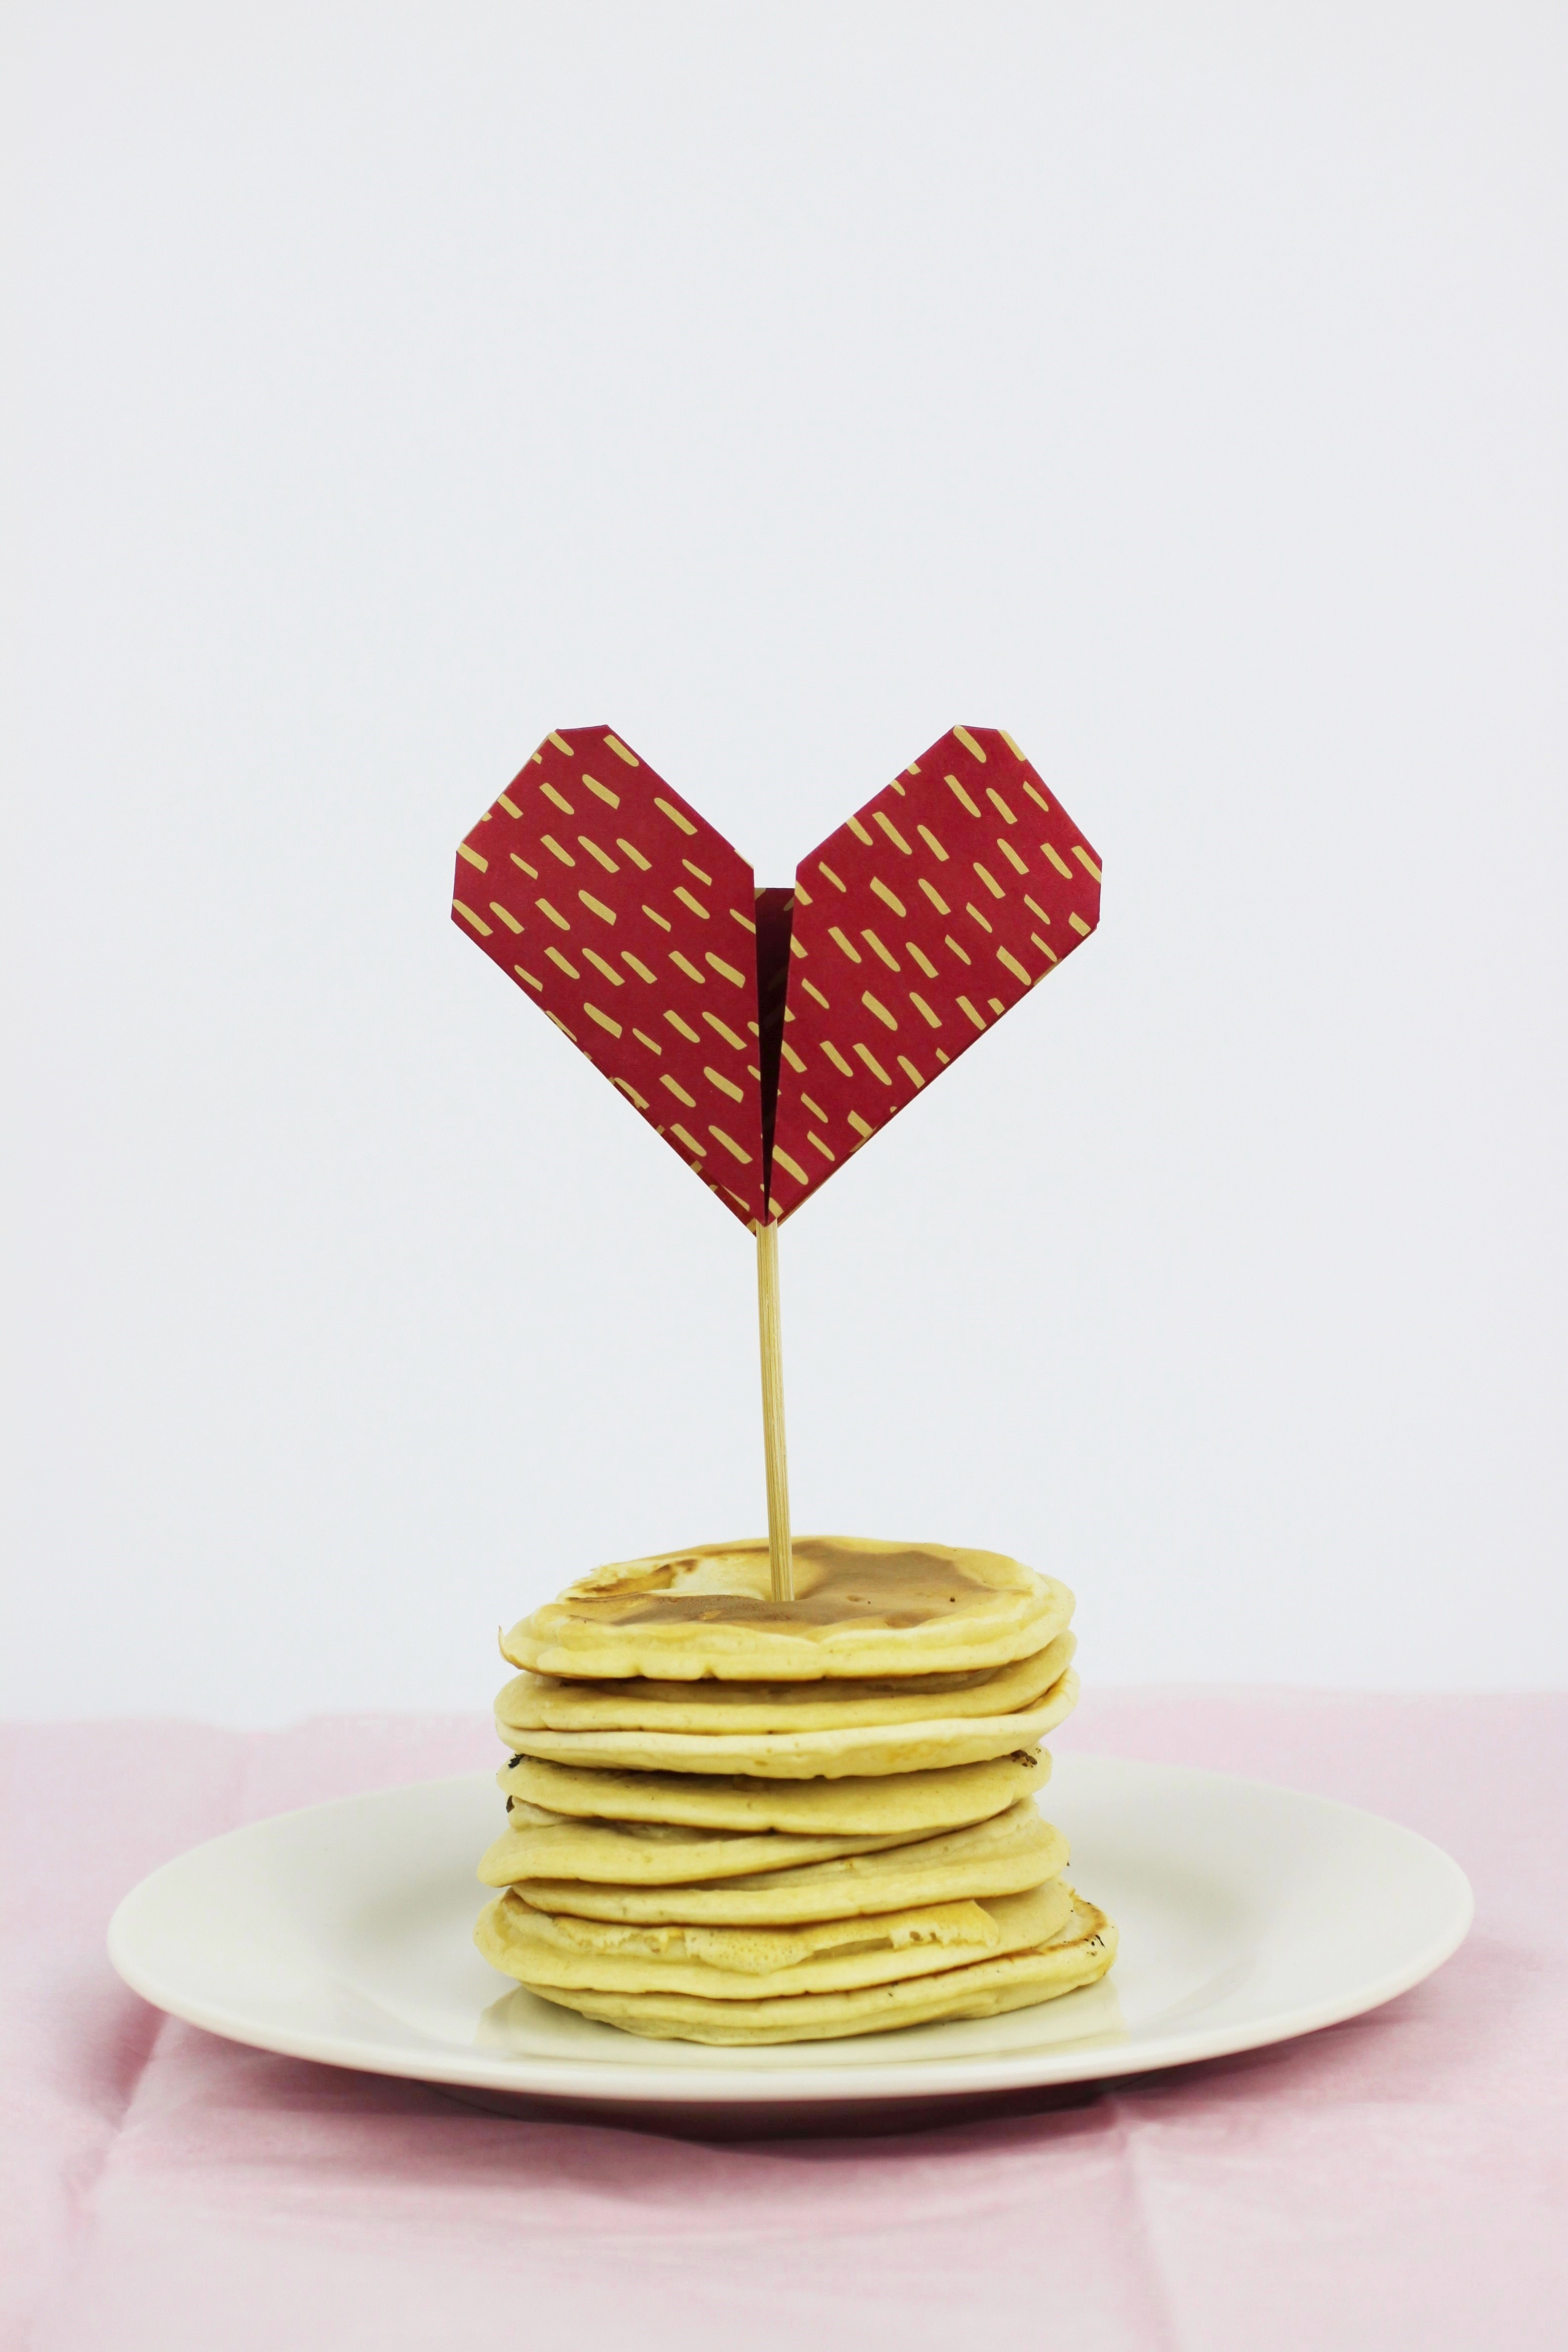 Diy Origami Heart Pancake Topper Shelley Makes Mouse Diagram Embroidery Img 0094